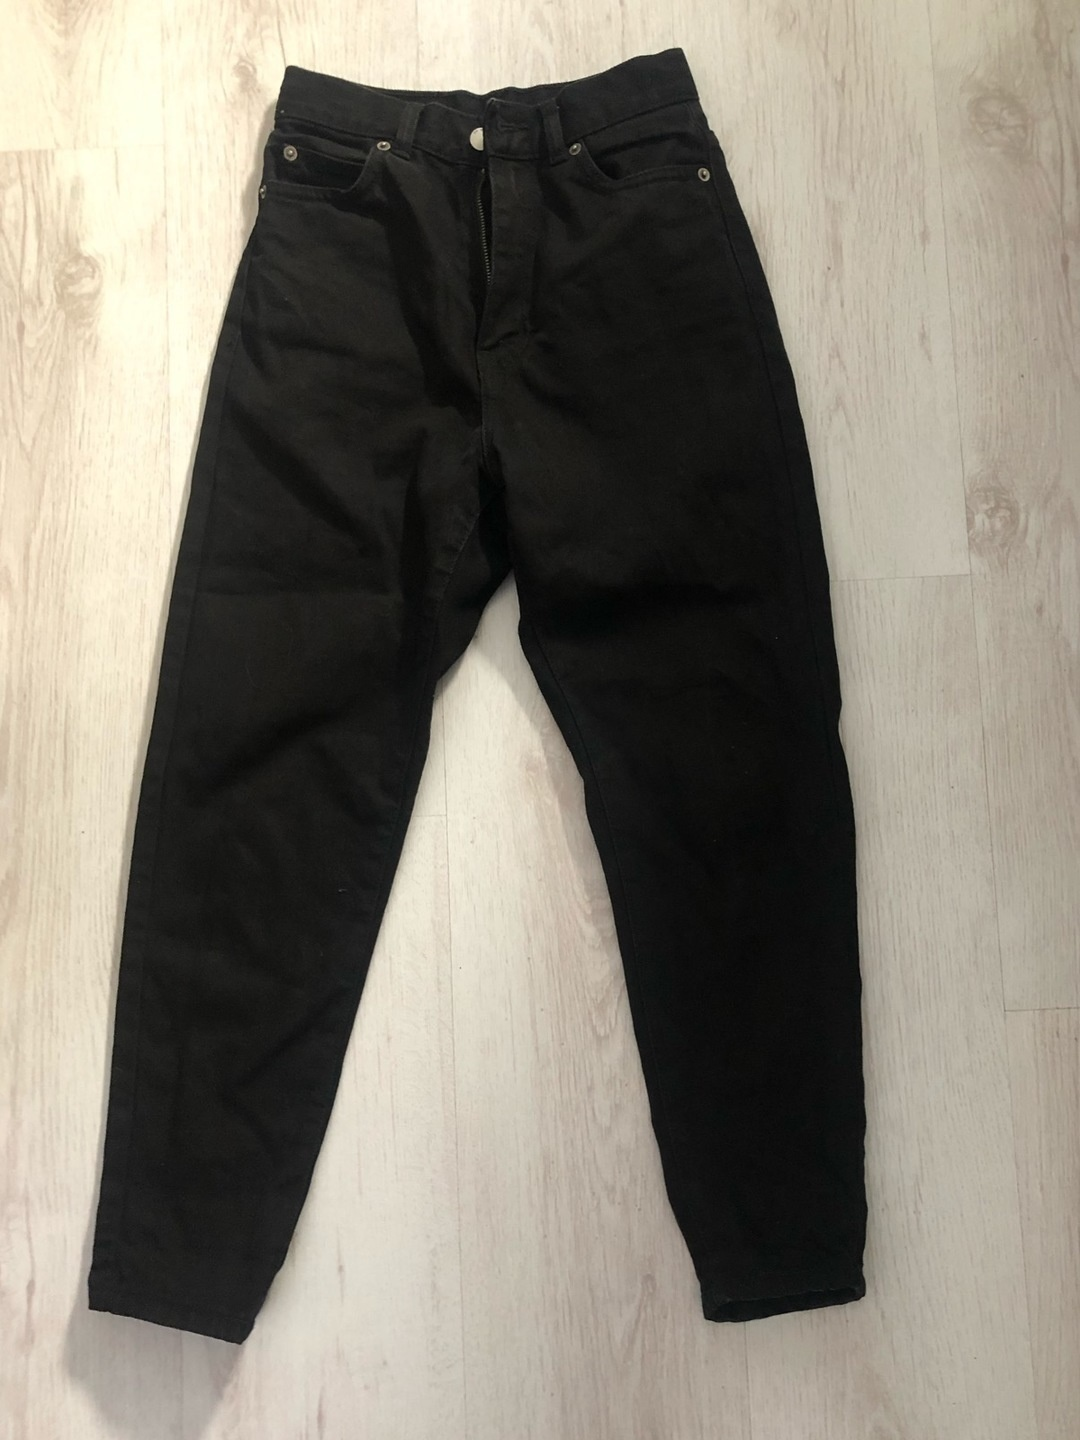 Damers bukser og jeans - DR. DENIM photo 1